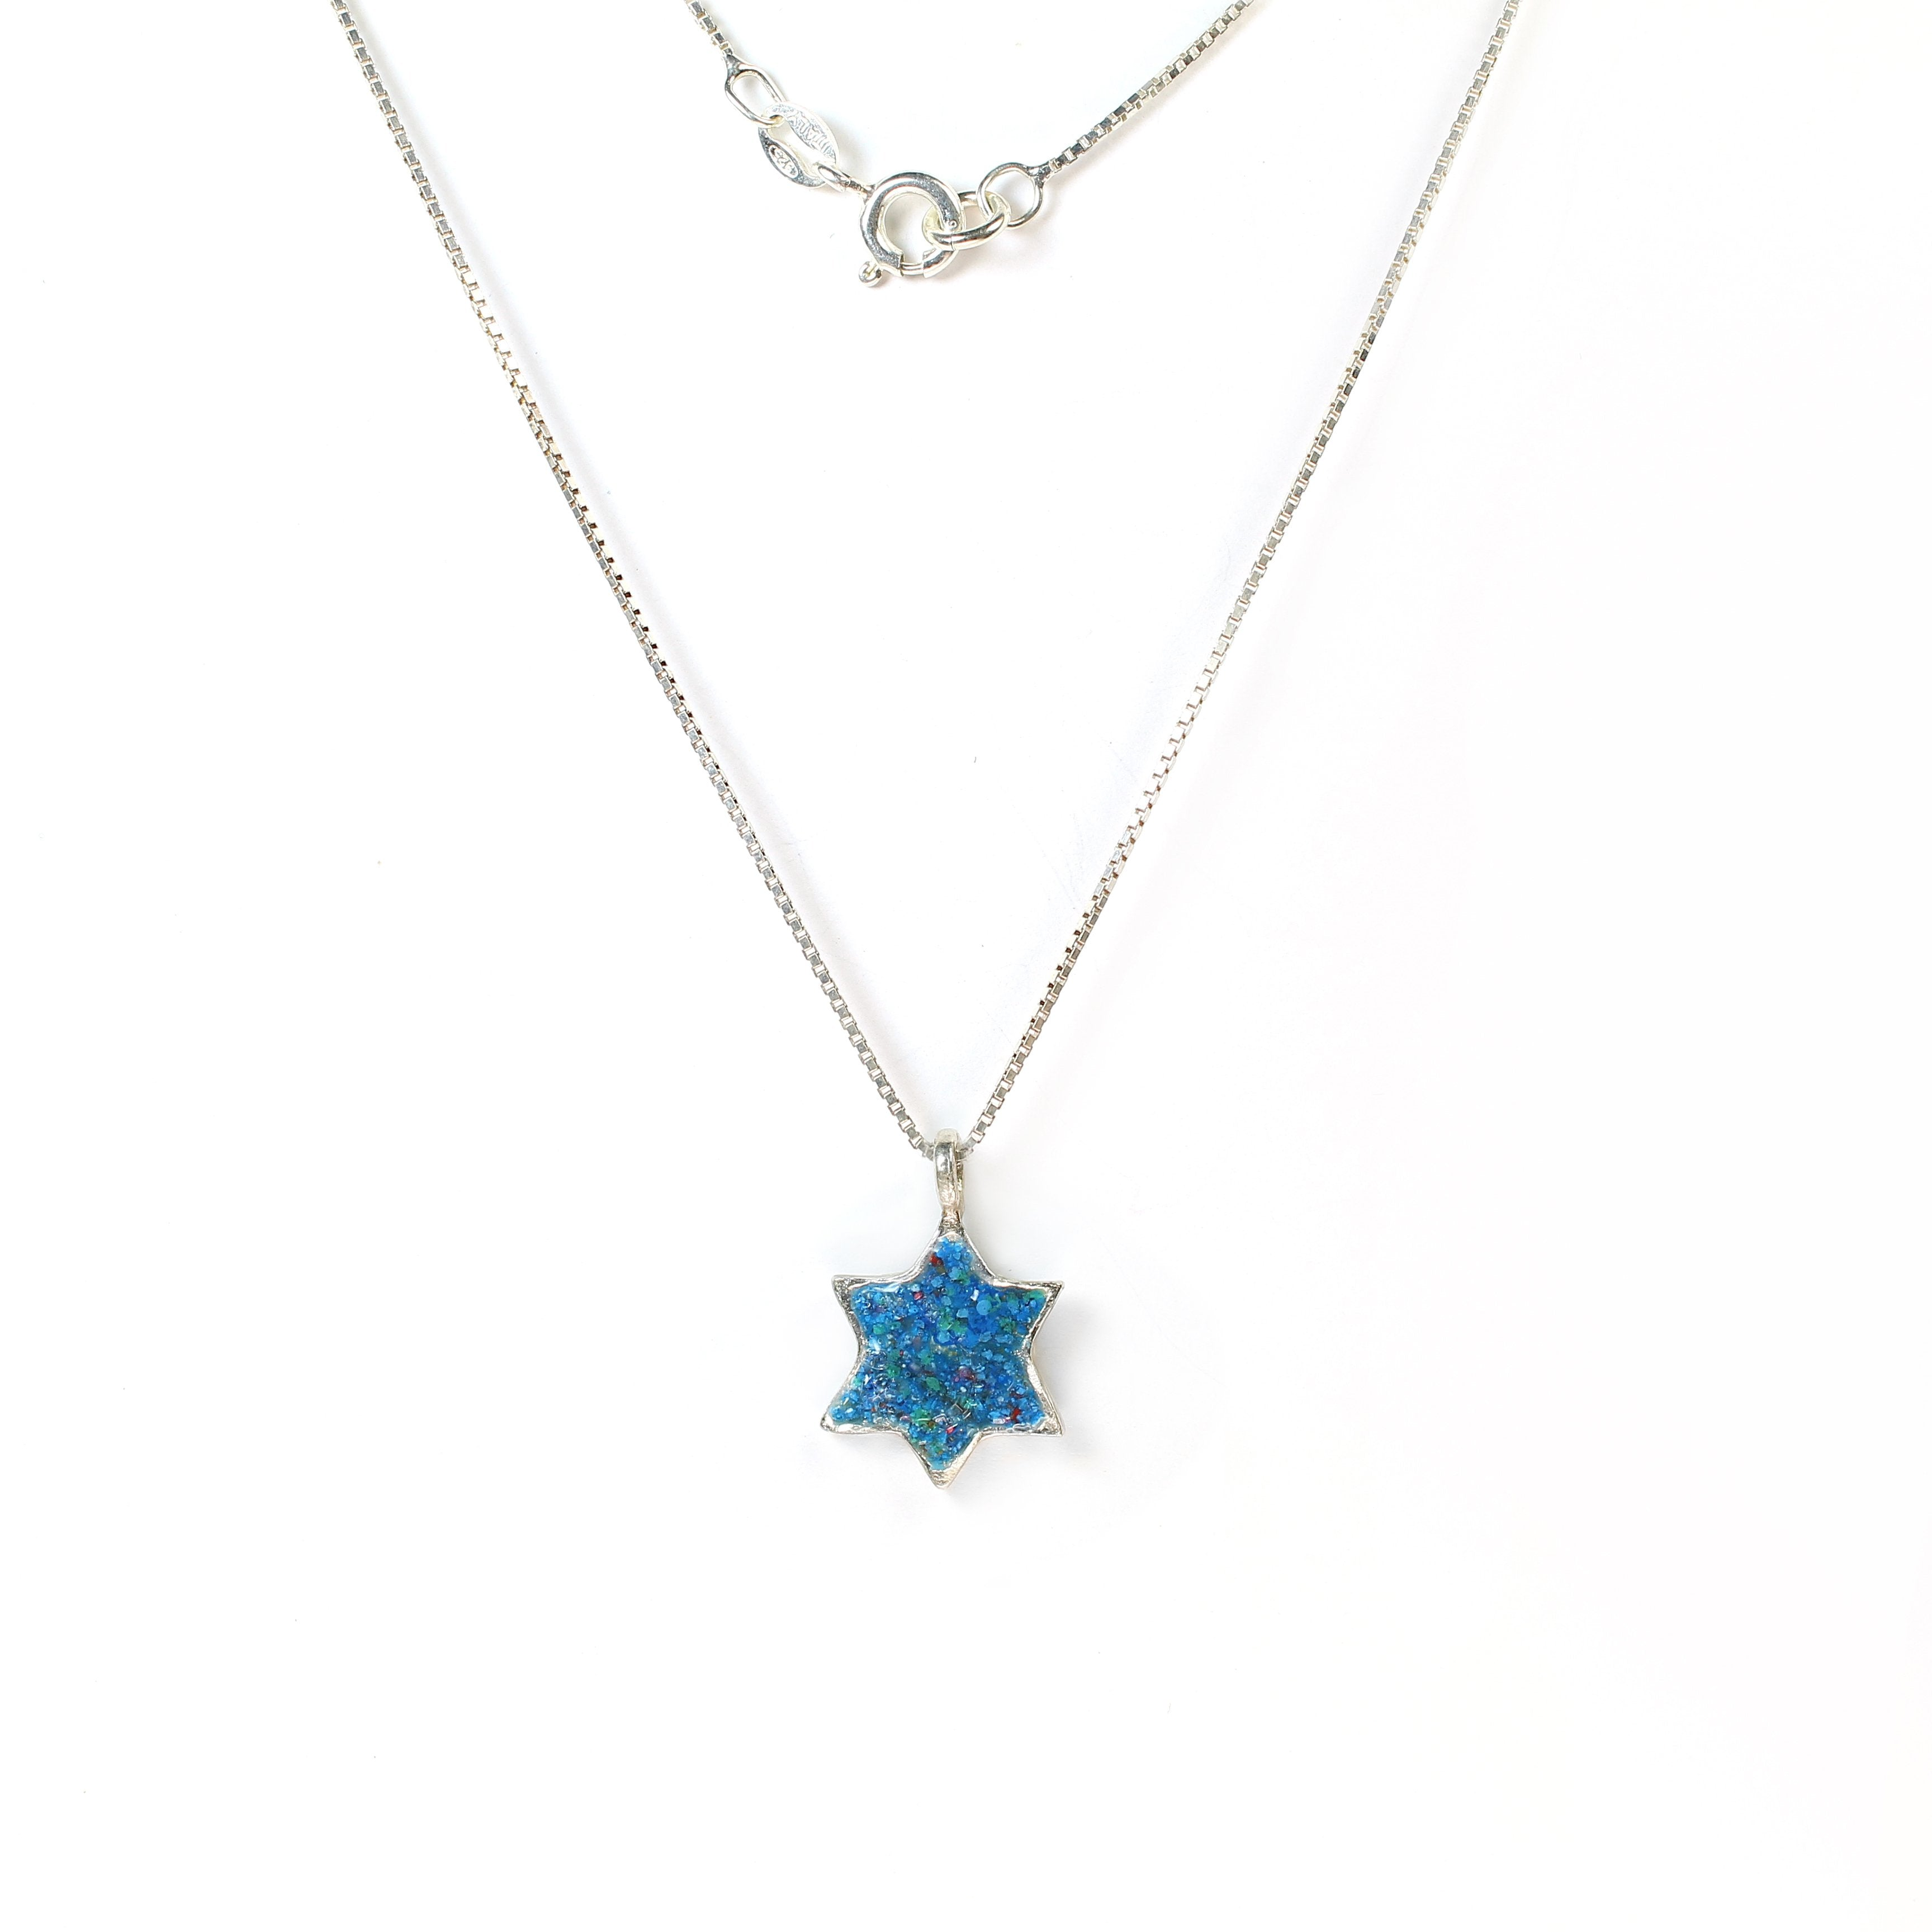 Blue Star of David Silver Necklace with stones - Shulamit Kanter